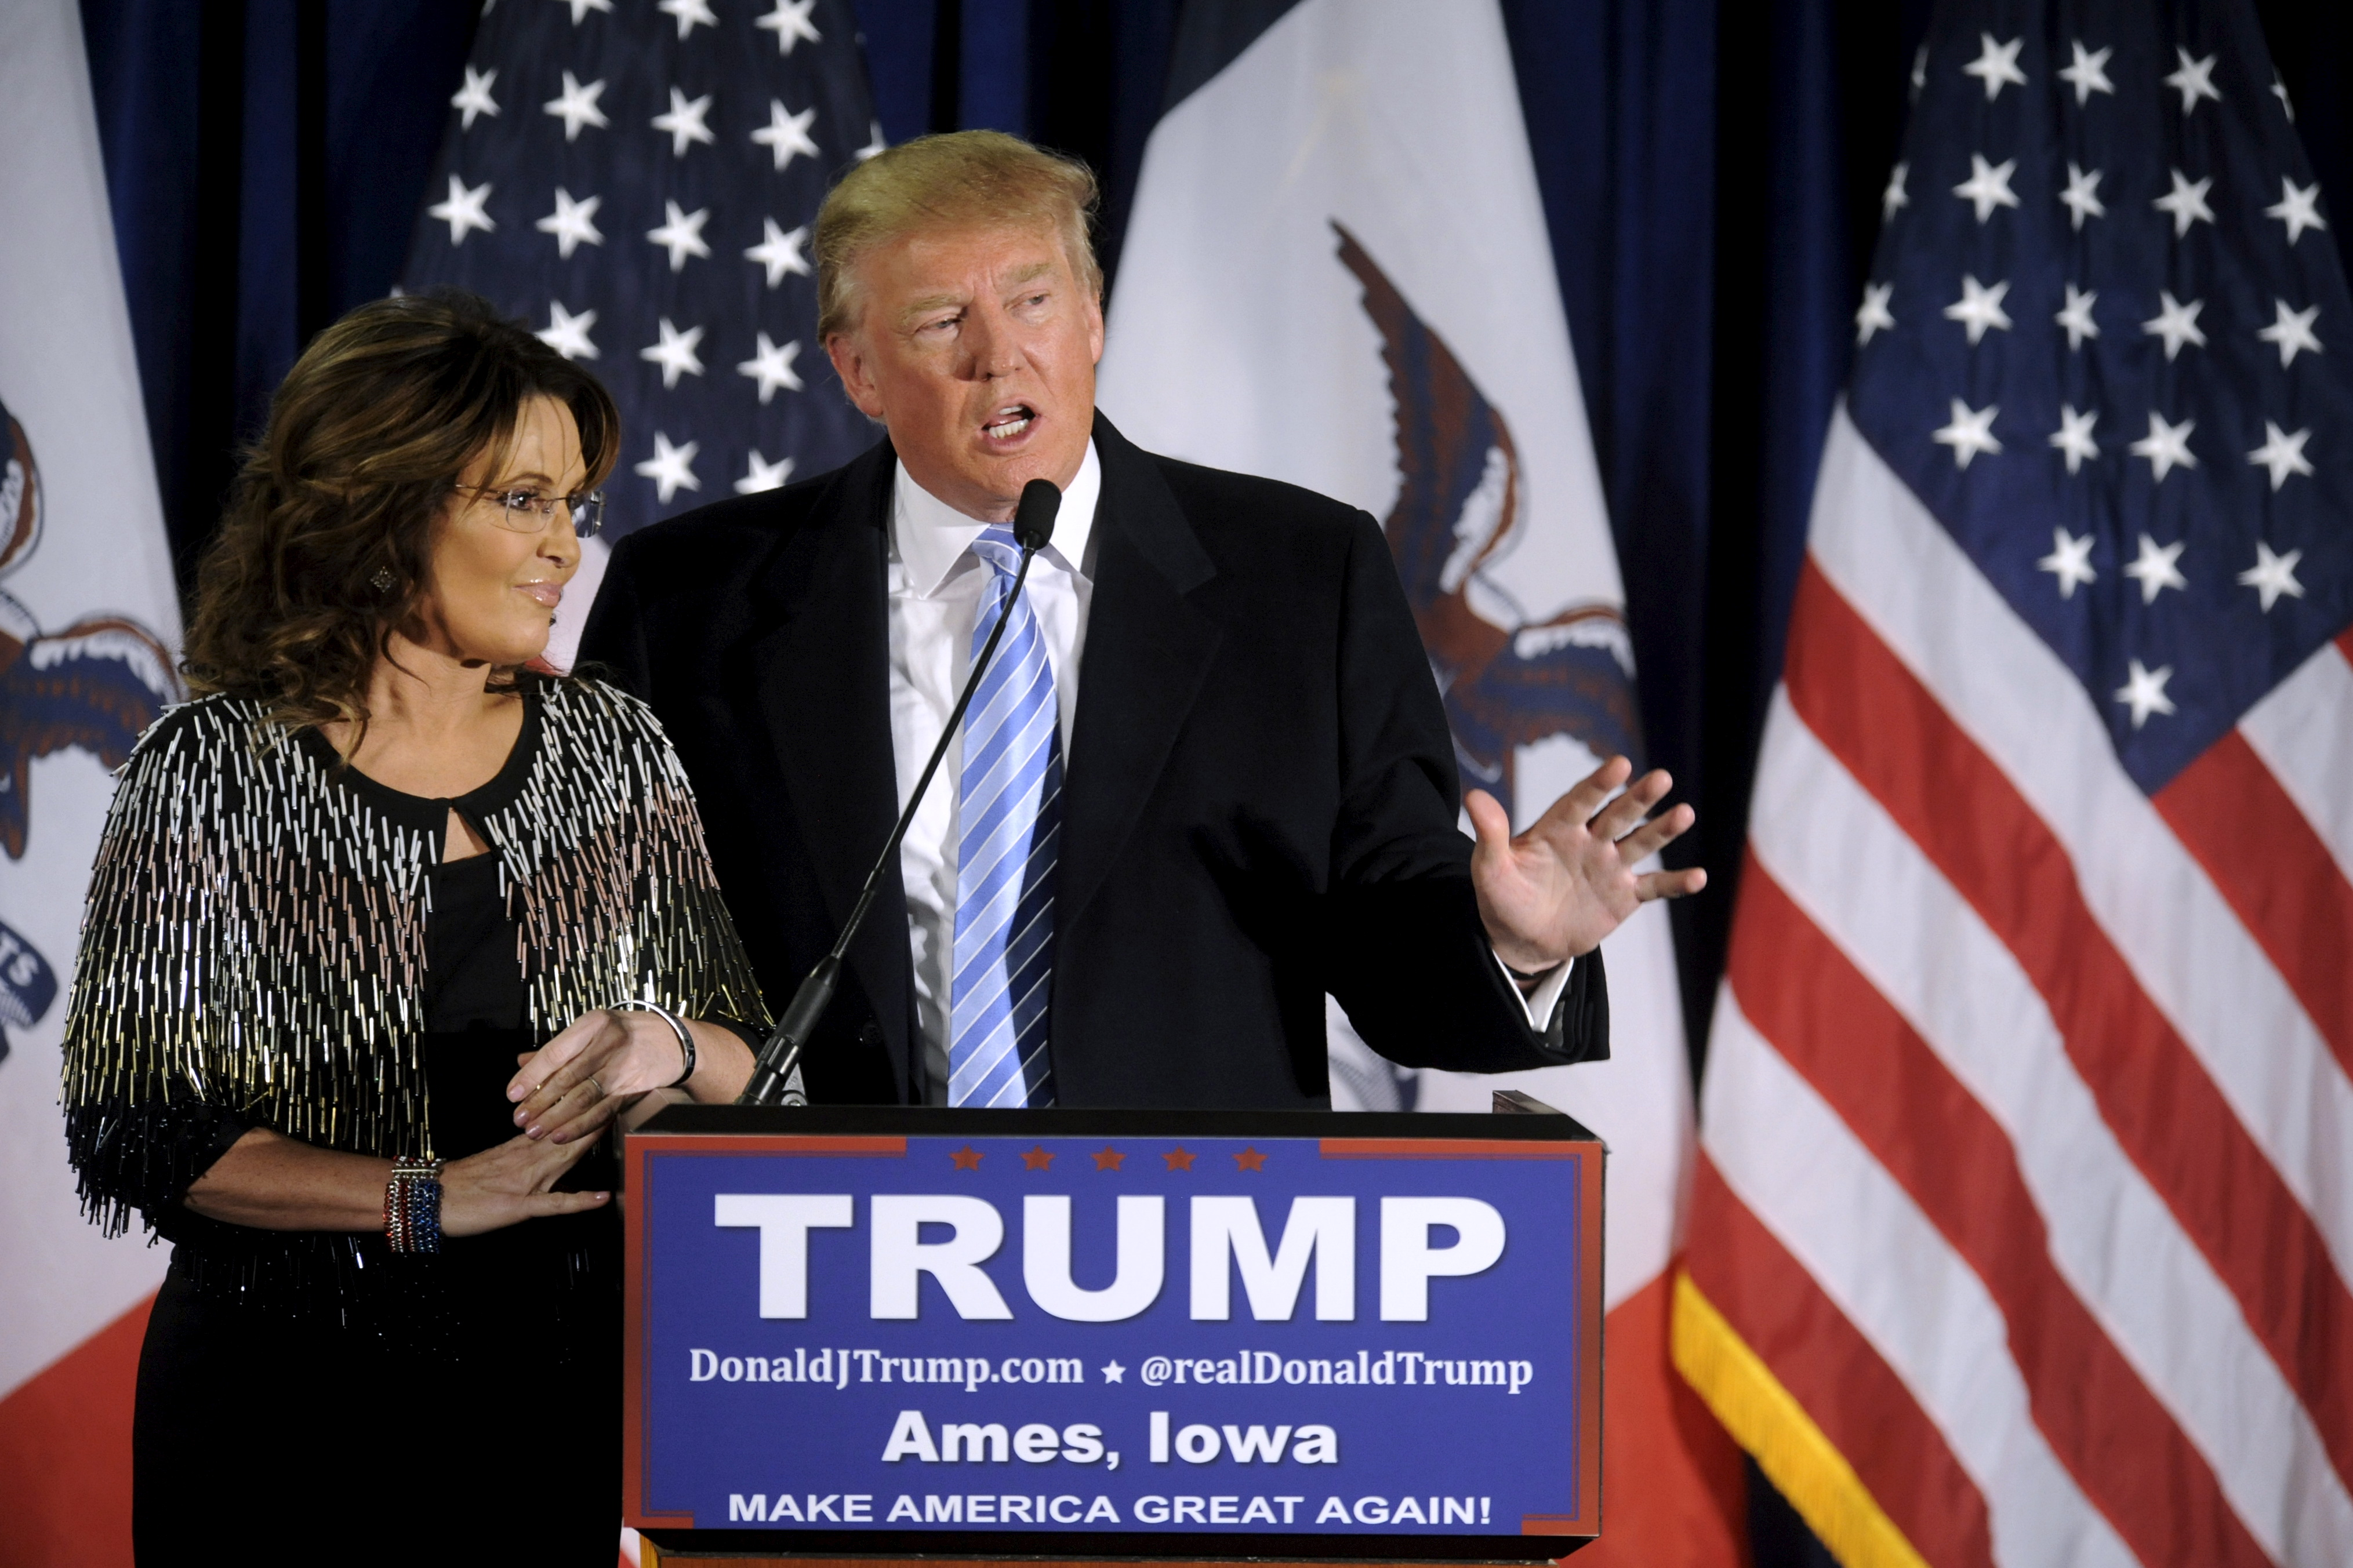 Trump Cabinet auditions: Progressive Energy Secretary Sarah Palin?